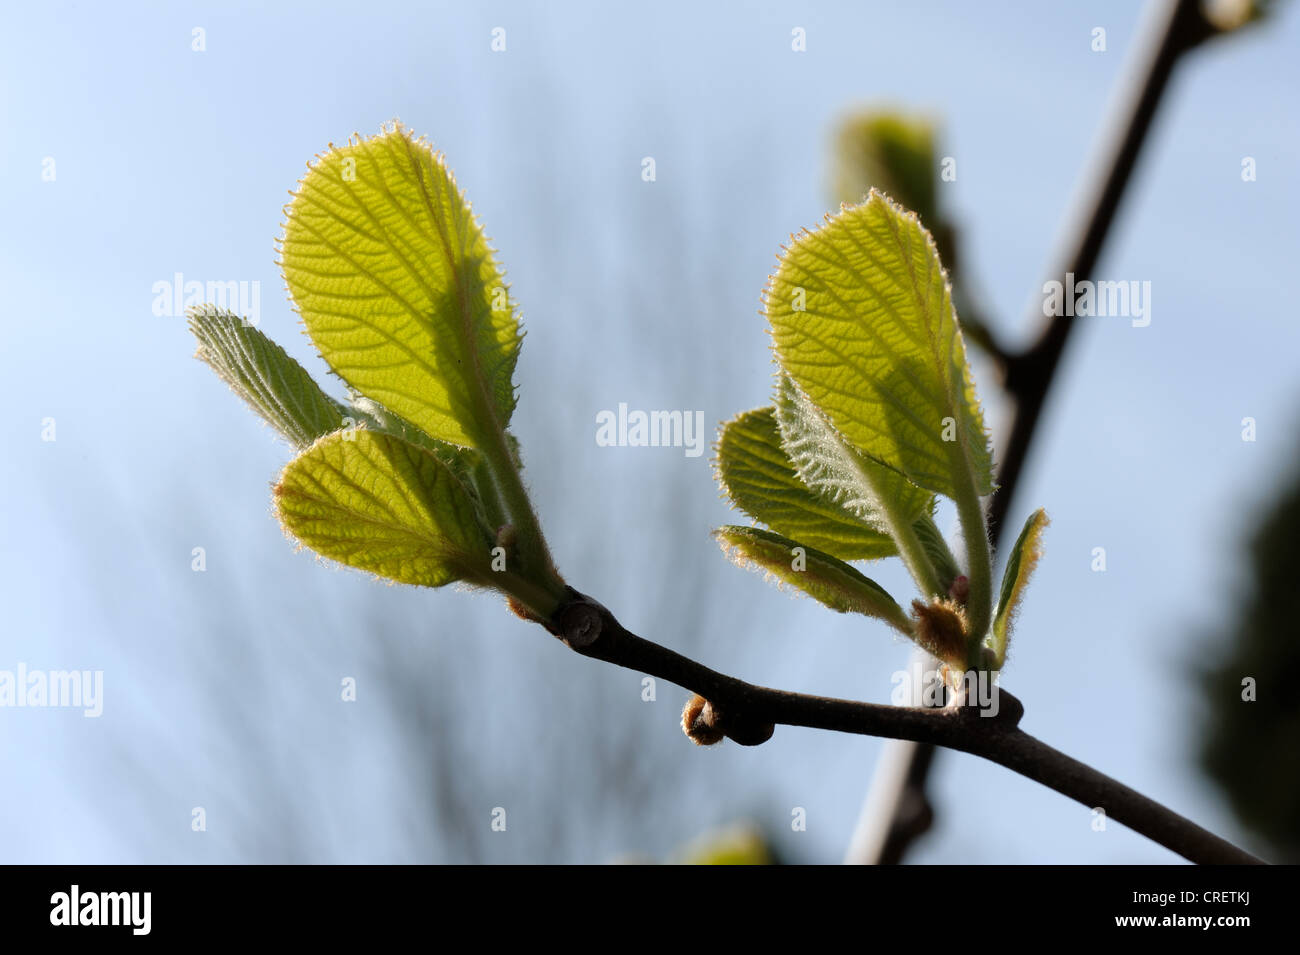 Young leaf growth on a kiwi vine back lit by spring sunshine - Stock Image